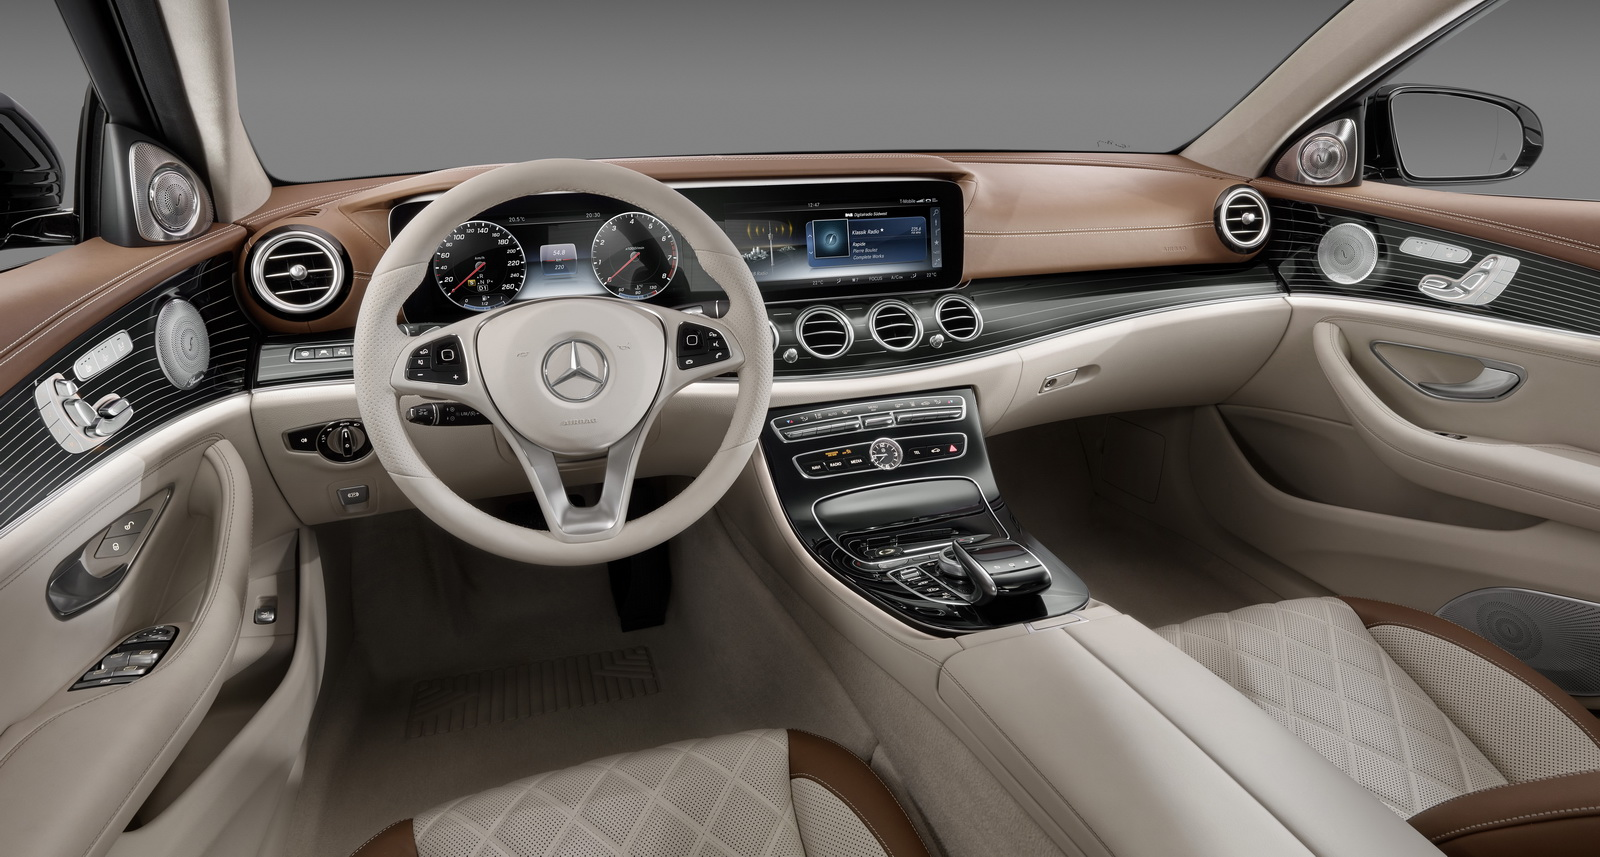 2016 mercedes benz glk car interior design